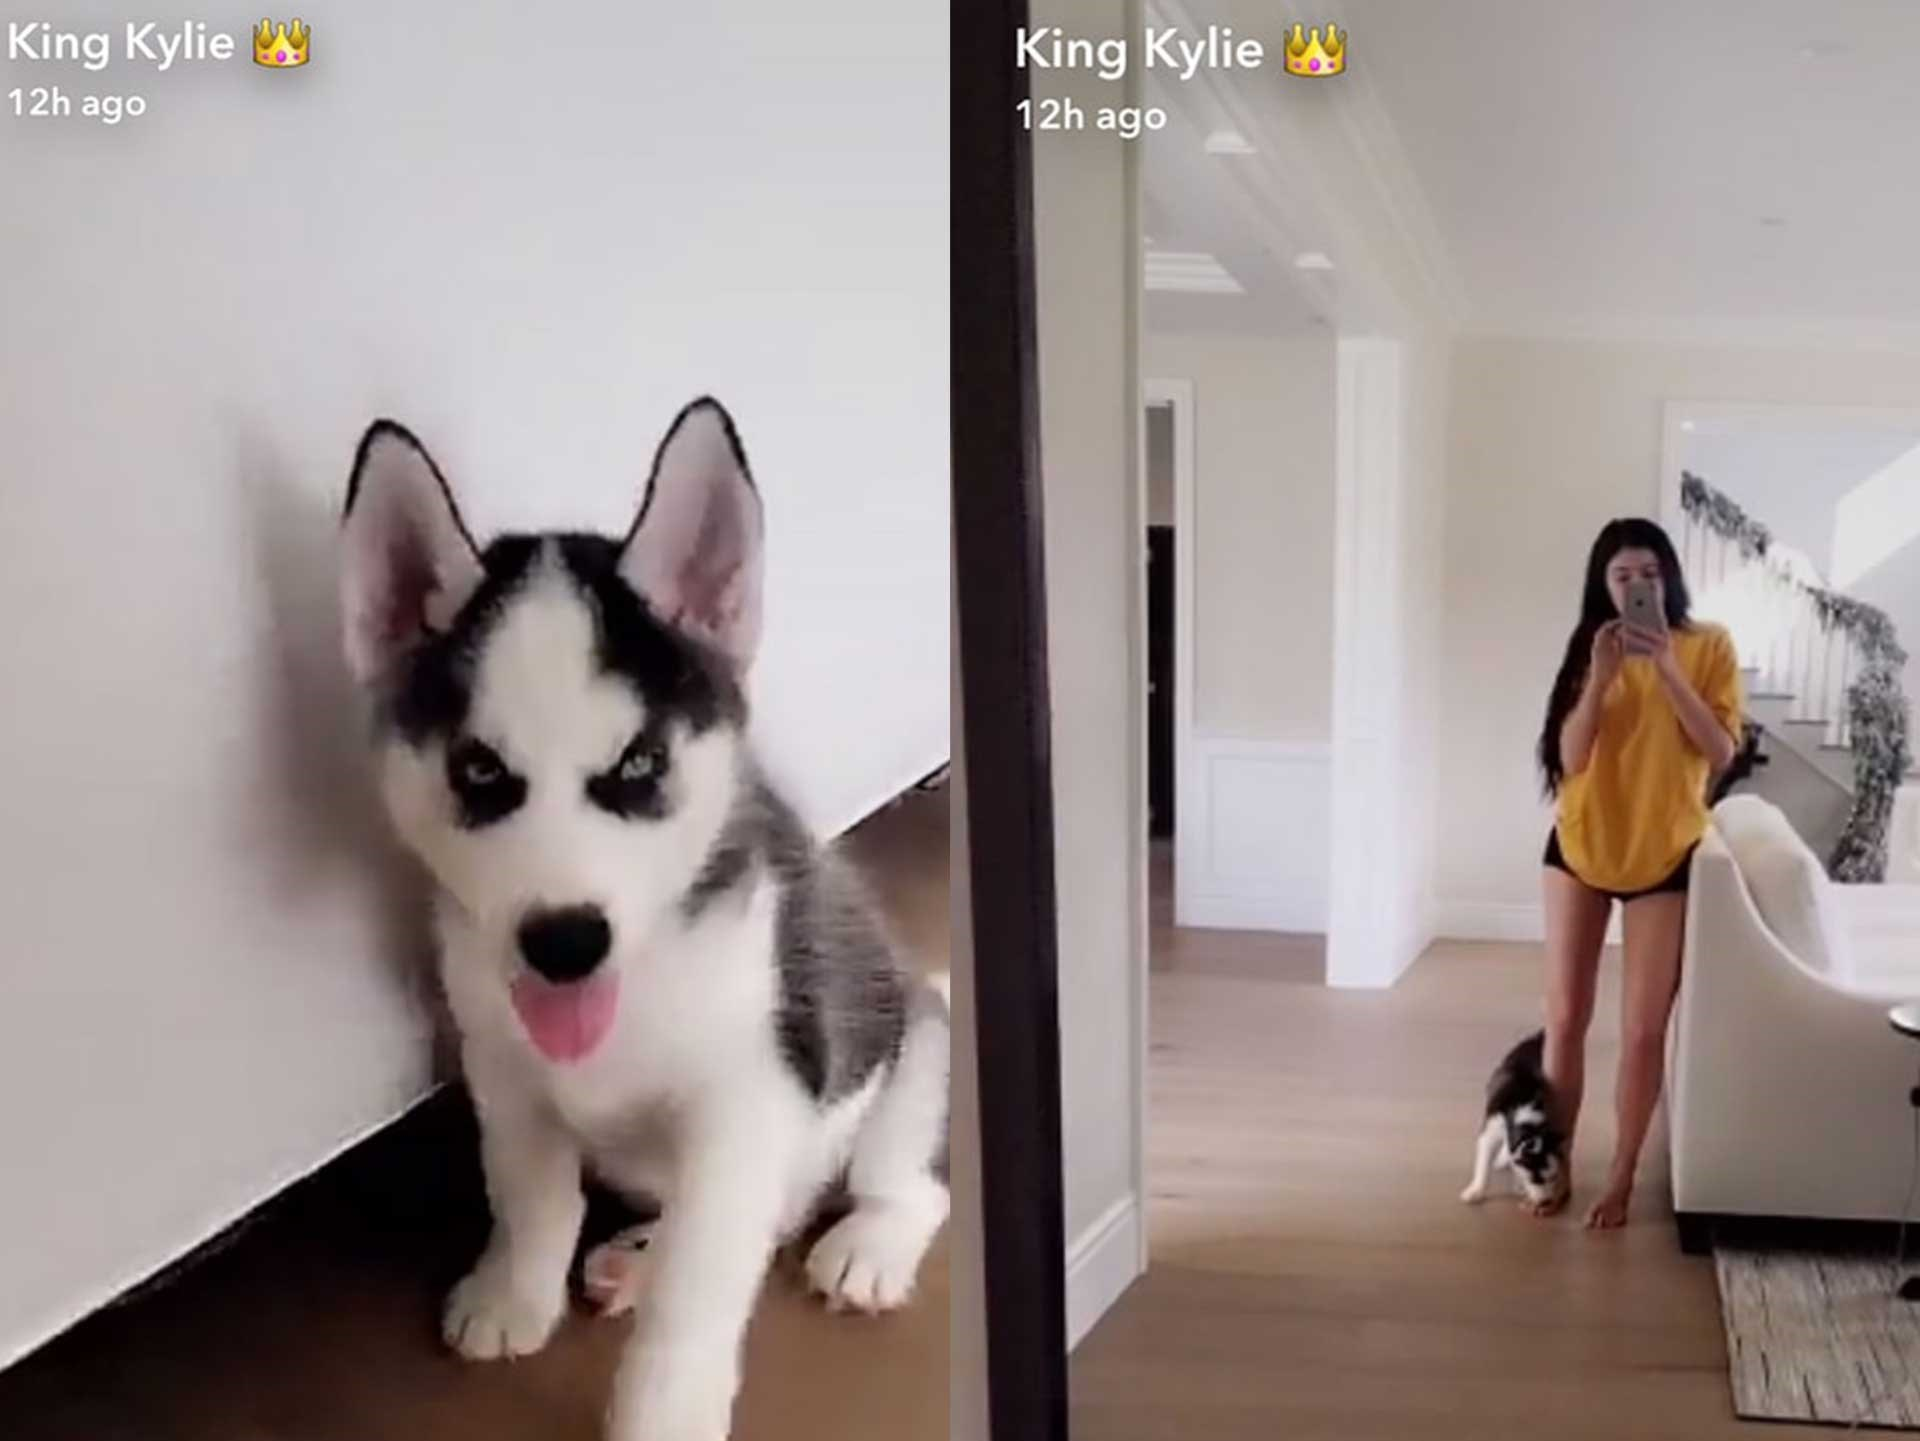 "Kylie Jenner has just extended her pooch family *again* by adding a puppy Husky!!  ""He's having a hard time fitting in lol,"" she wrote on Snapchat, debuting her newest woofer.  She also shared [a video](https://www.instagram.com/p/BN6Lu_kleYs/) of the puppy playing with Khloe, and it's just too much."